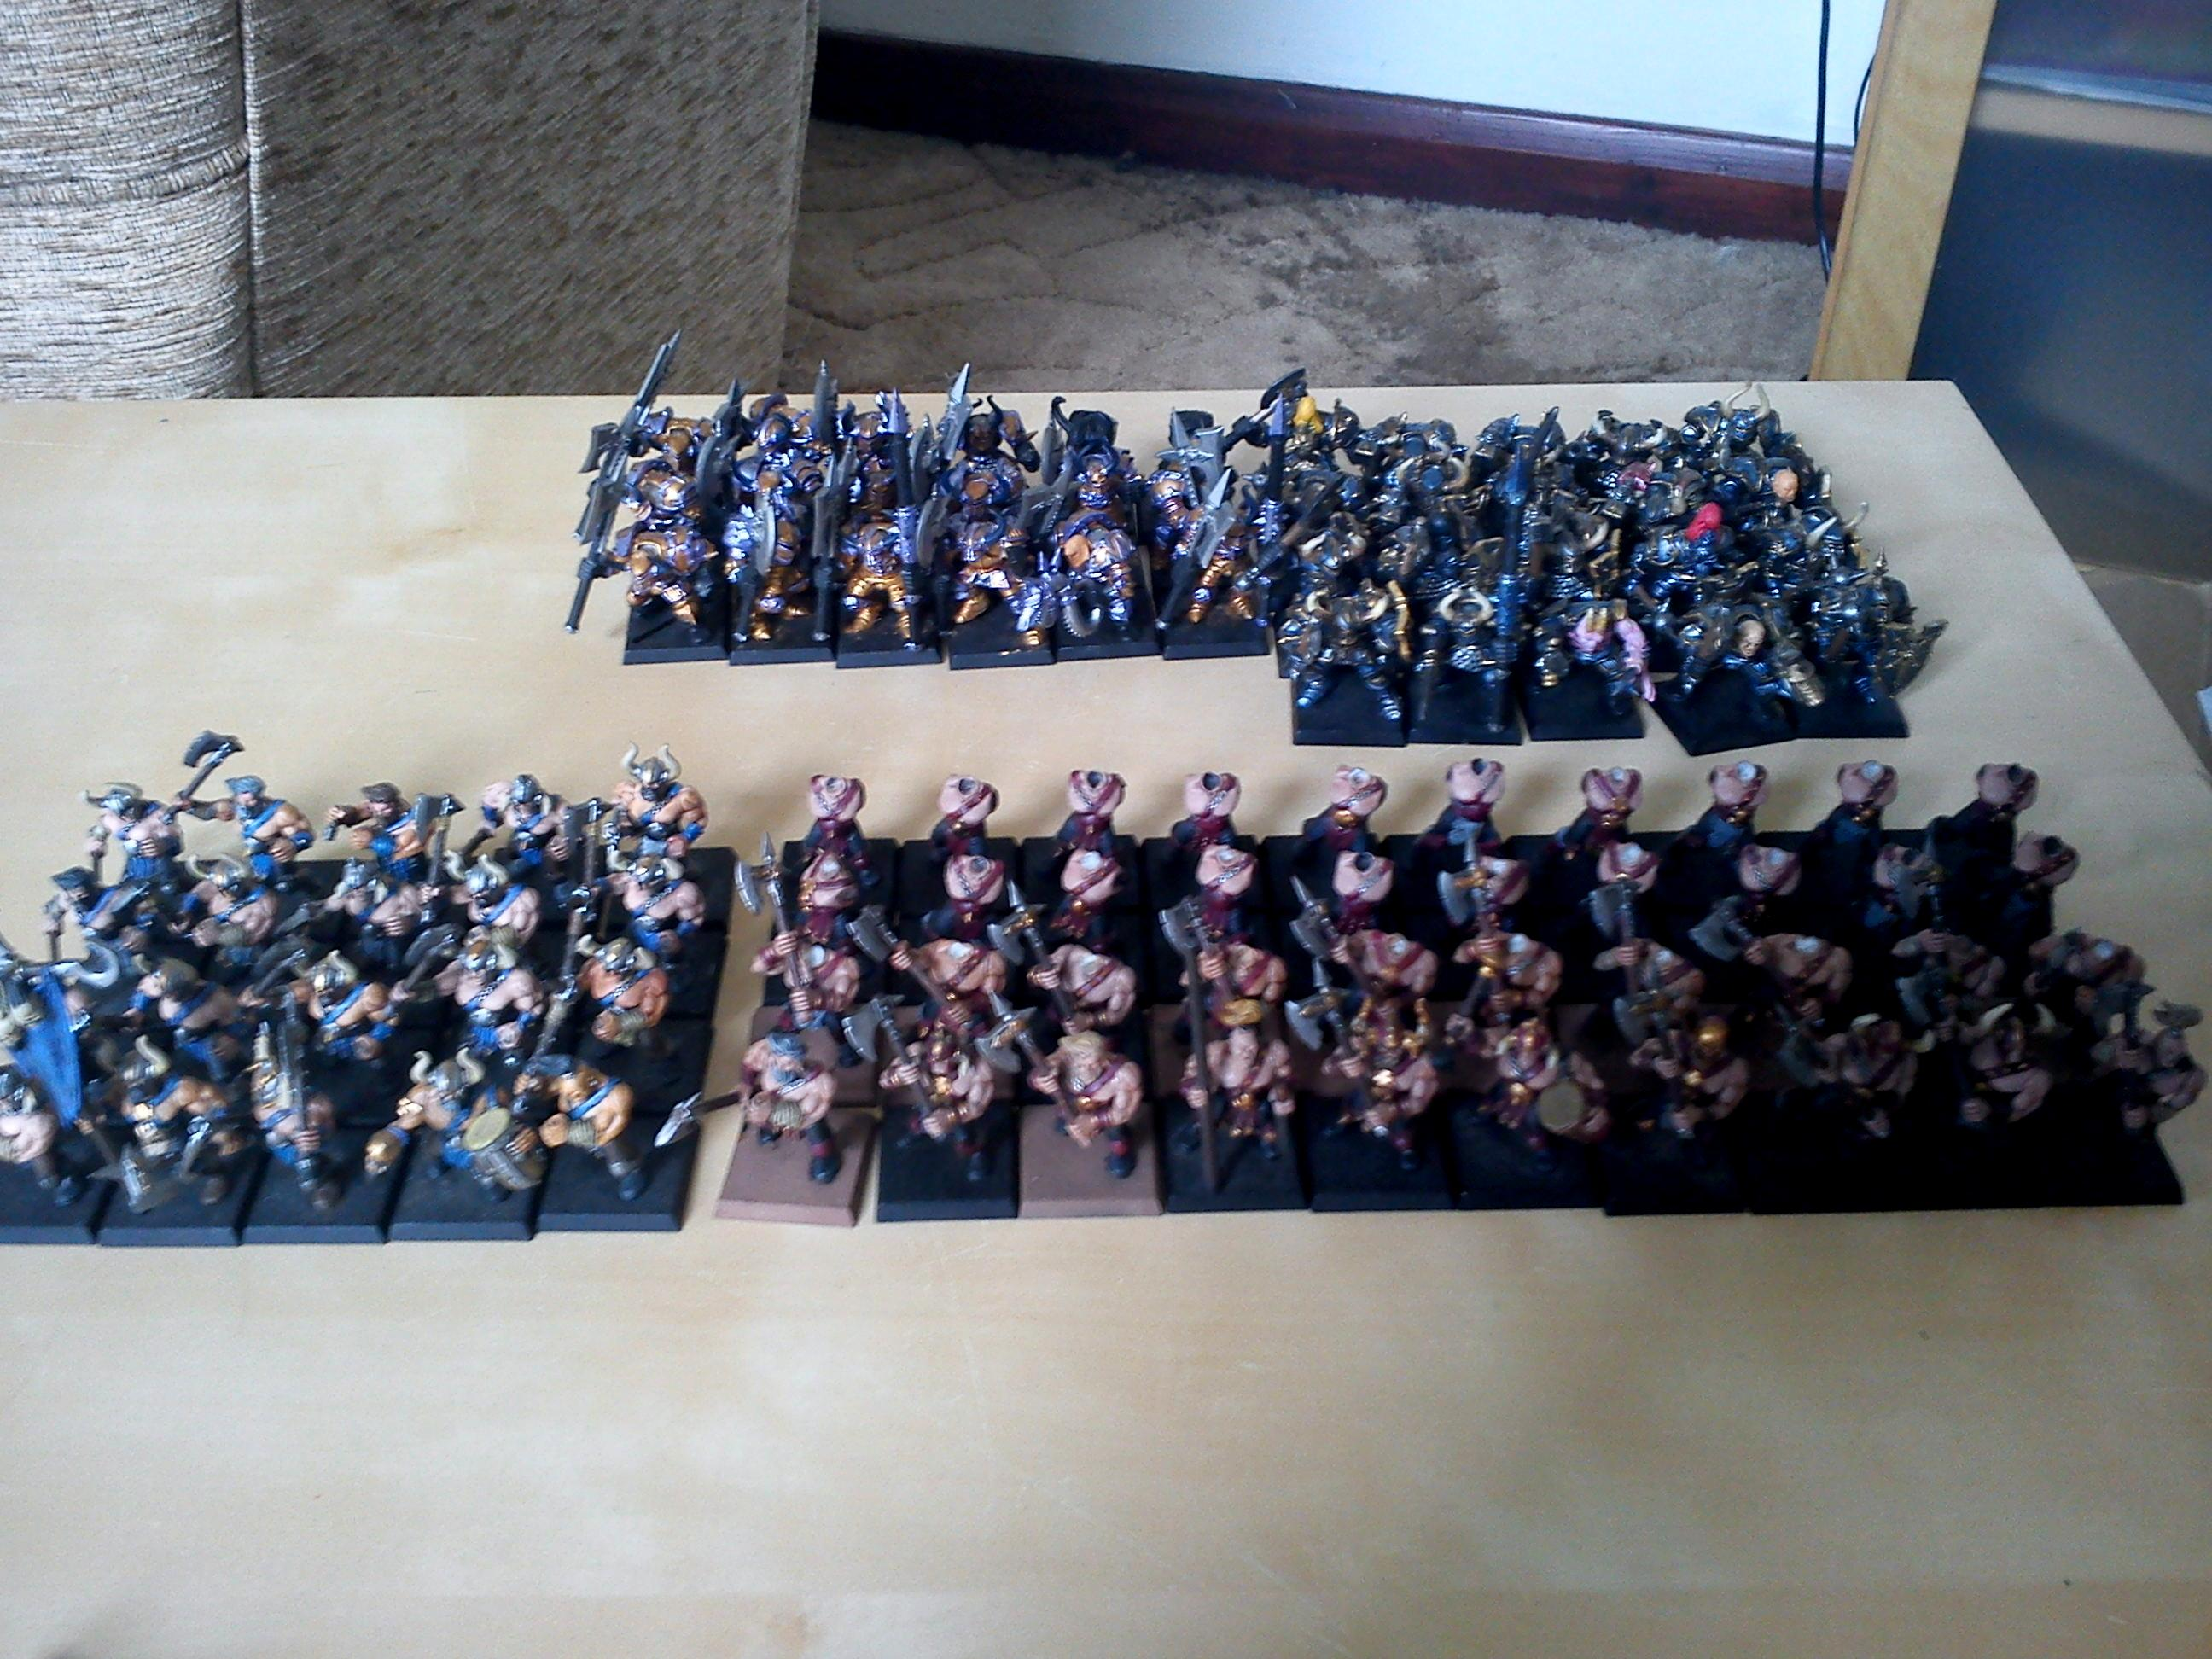 Most of the infantry